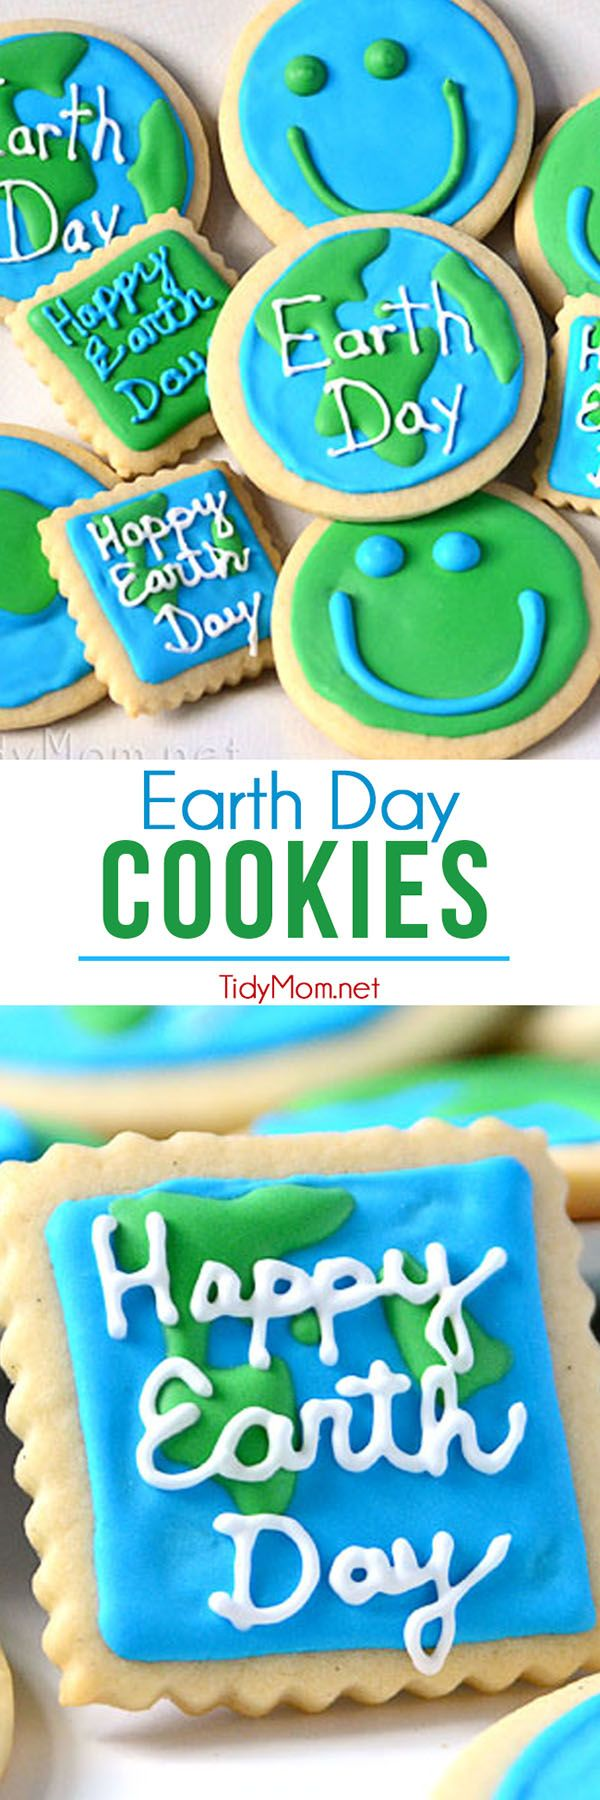 47 best save the earth images on pinterest earth day activities